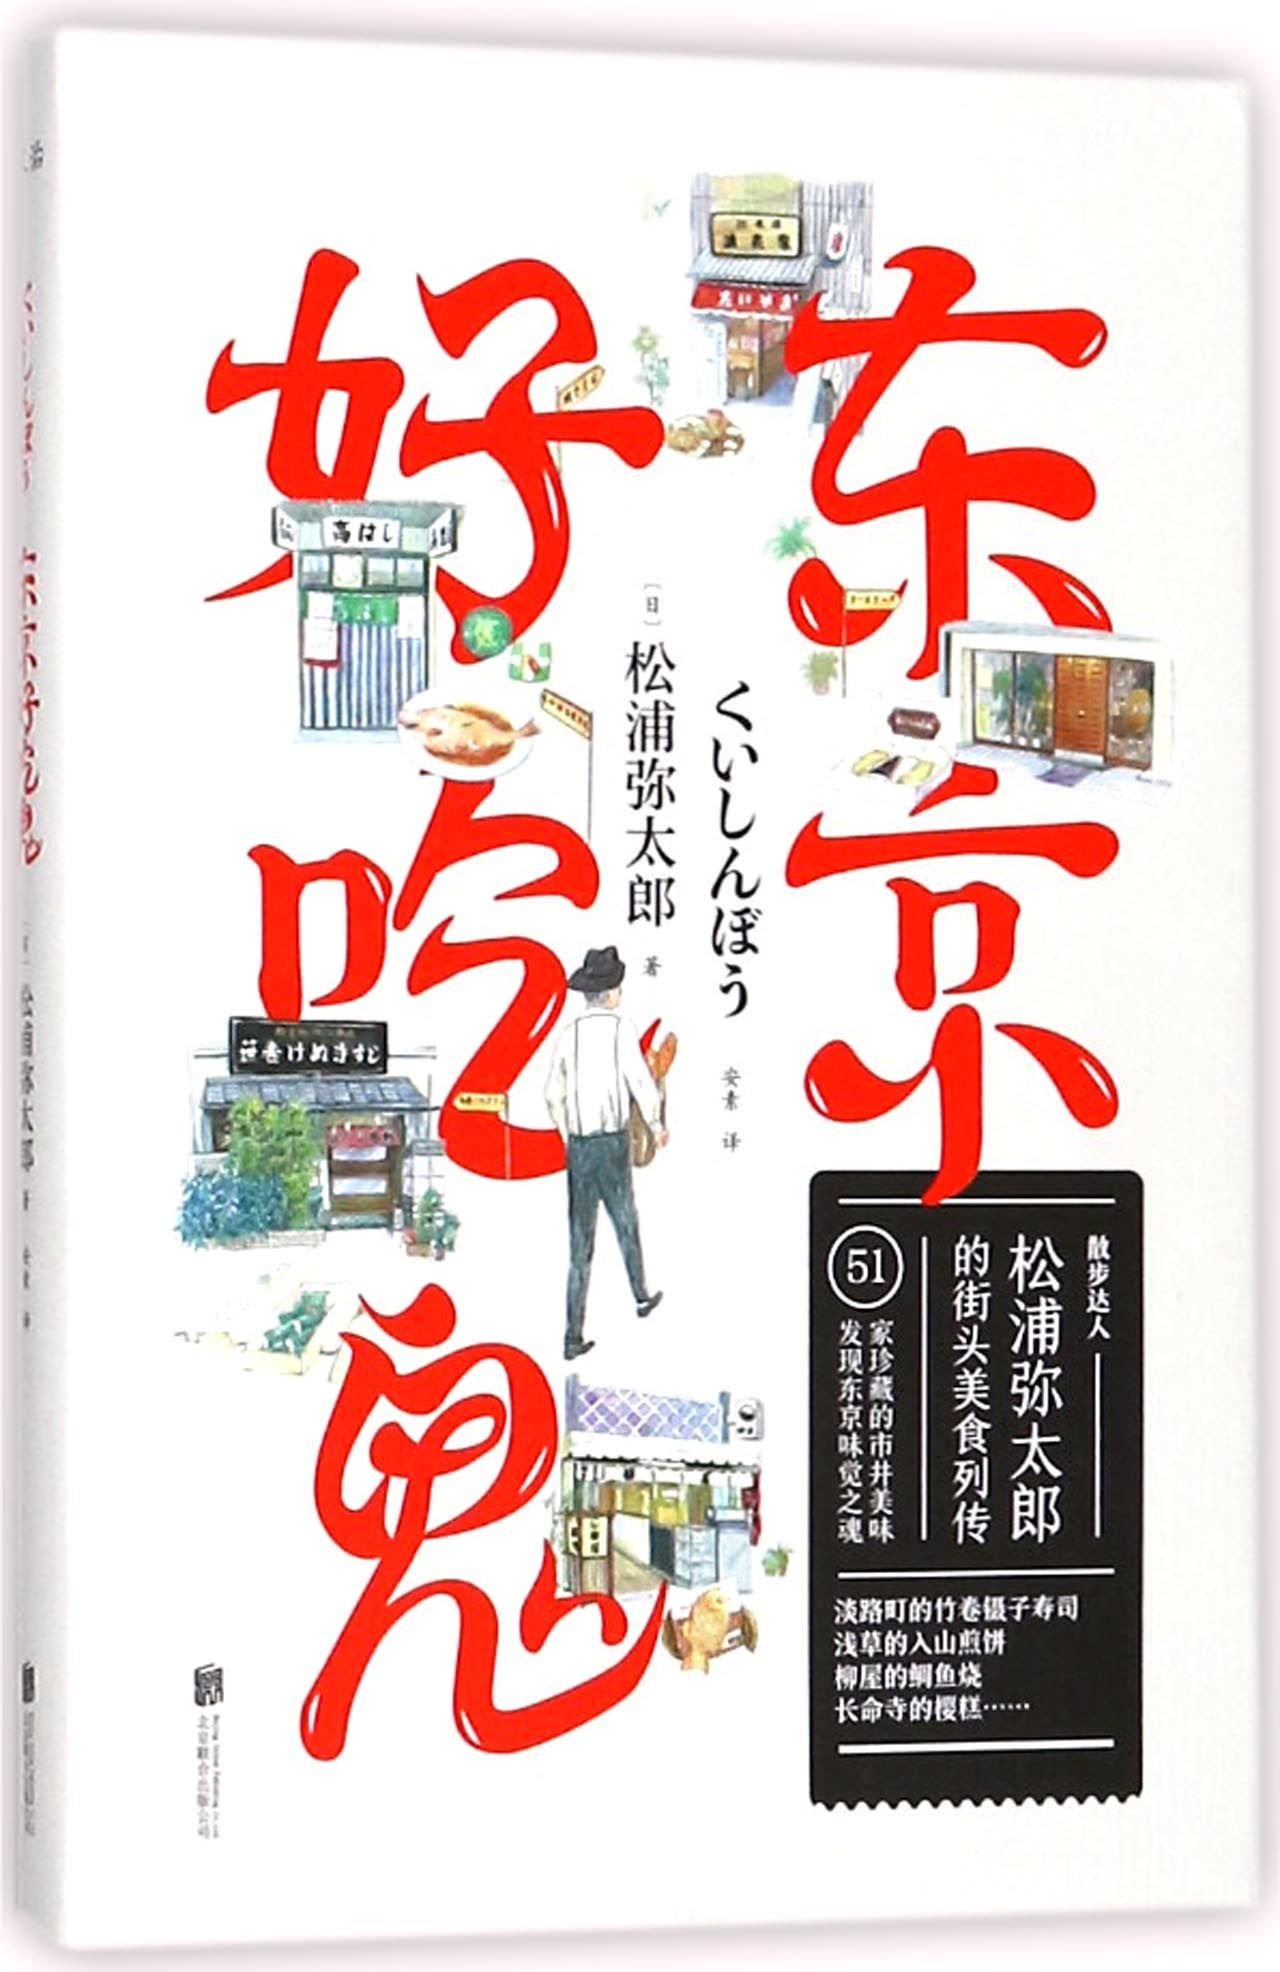 Kuishinbou (Chinese Edition) PDF